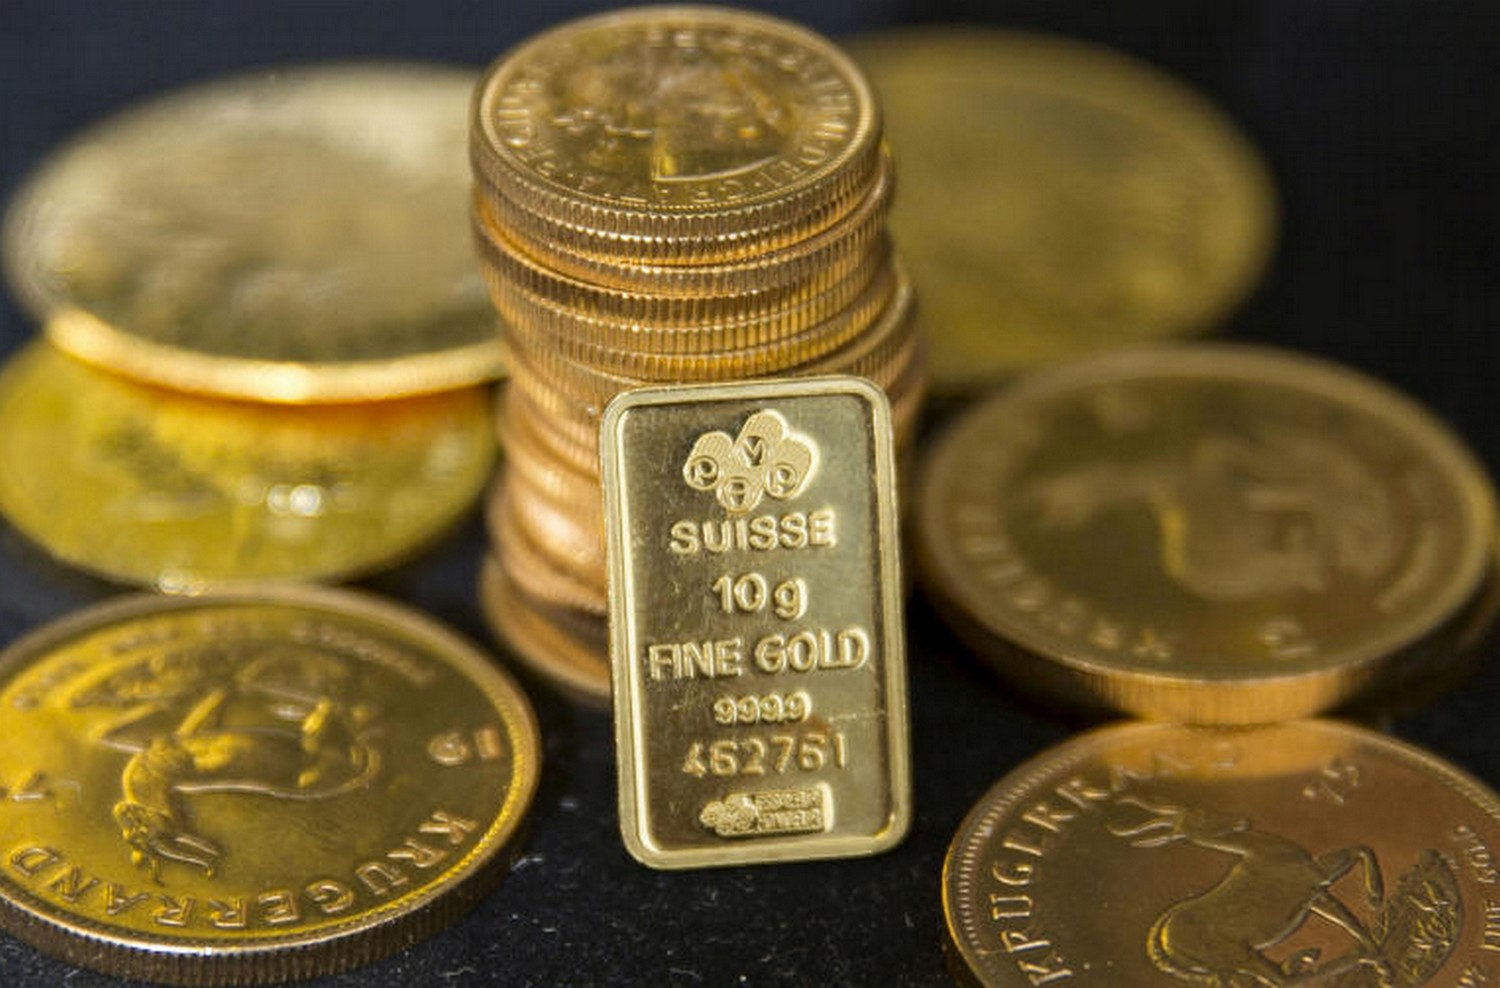 Gold bullion displayed at Hatton Garden Metals precious metal dealers in London. (Reuters file photo)